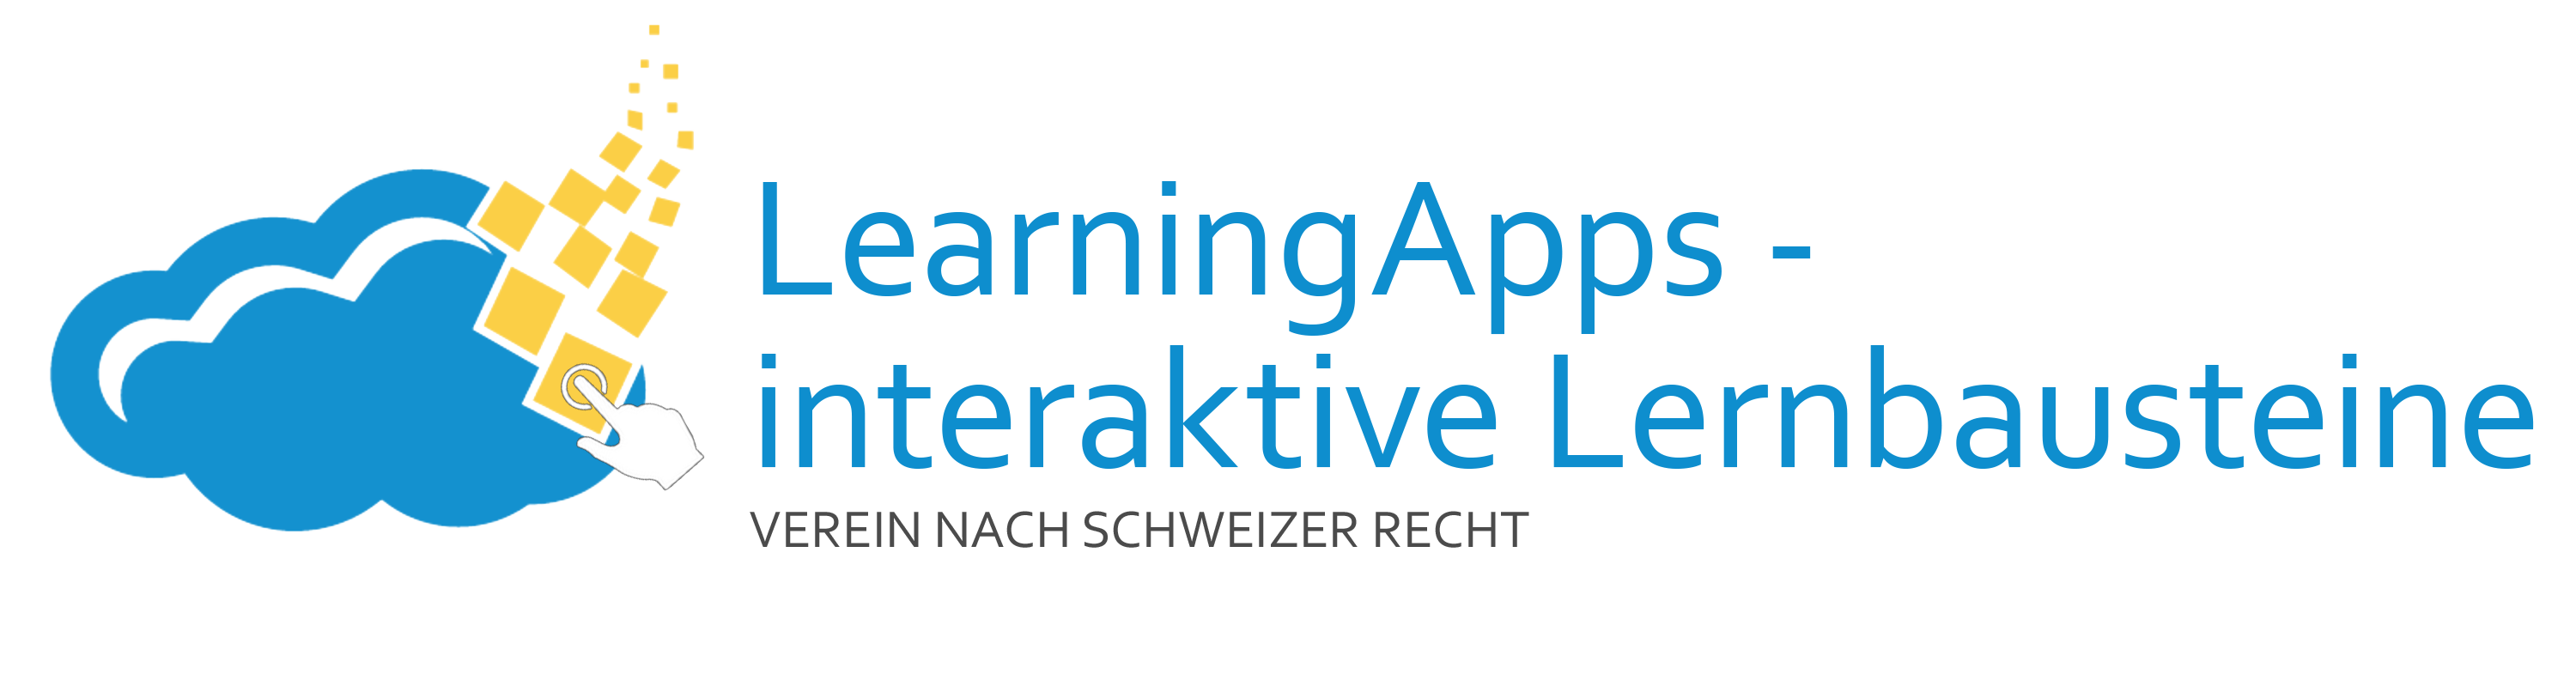 Verein: LearningApps - interaktive Bausteine